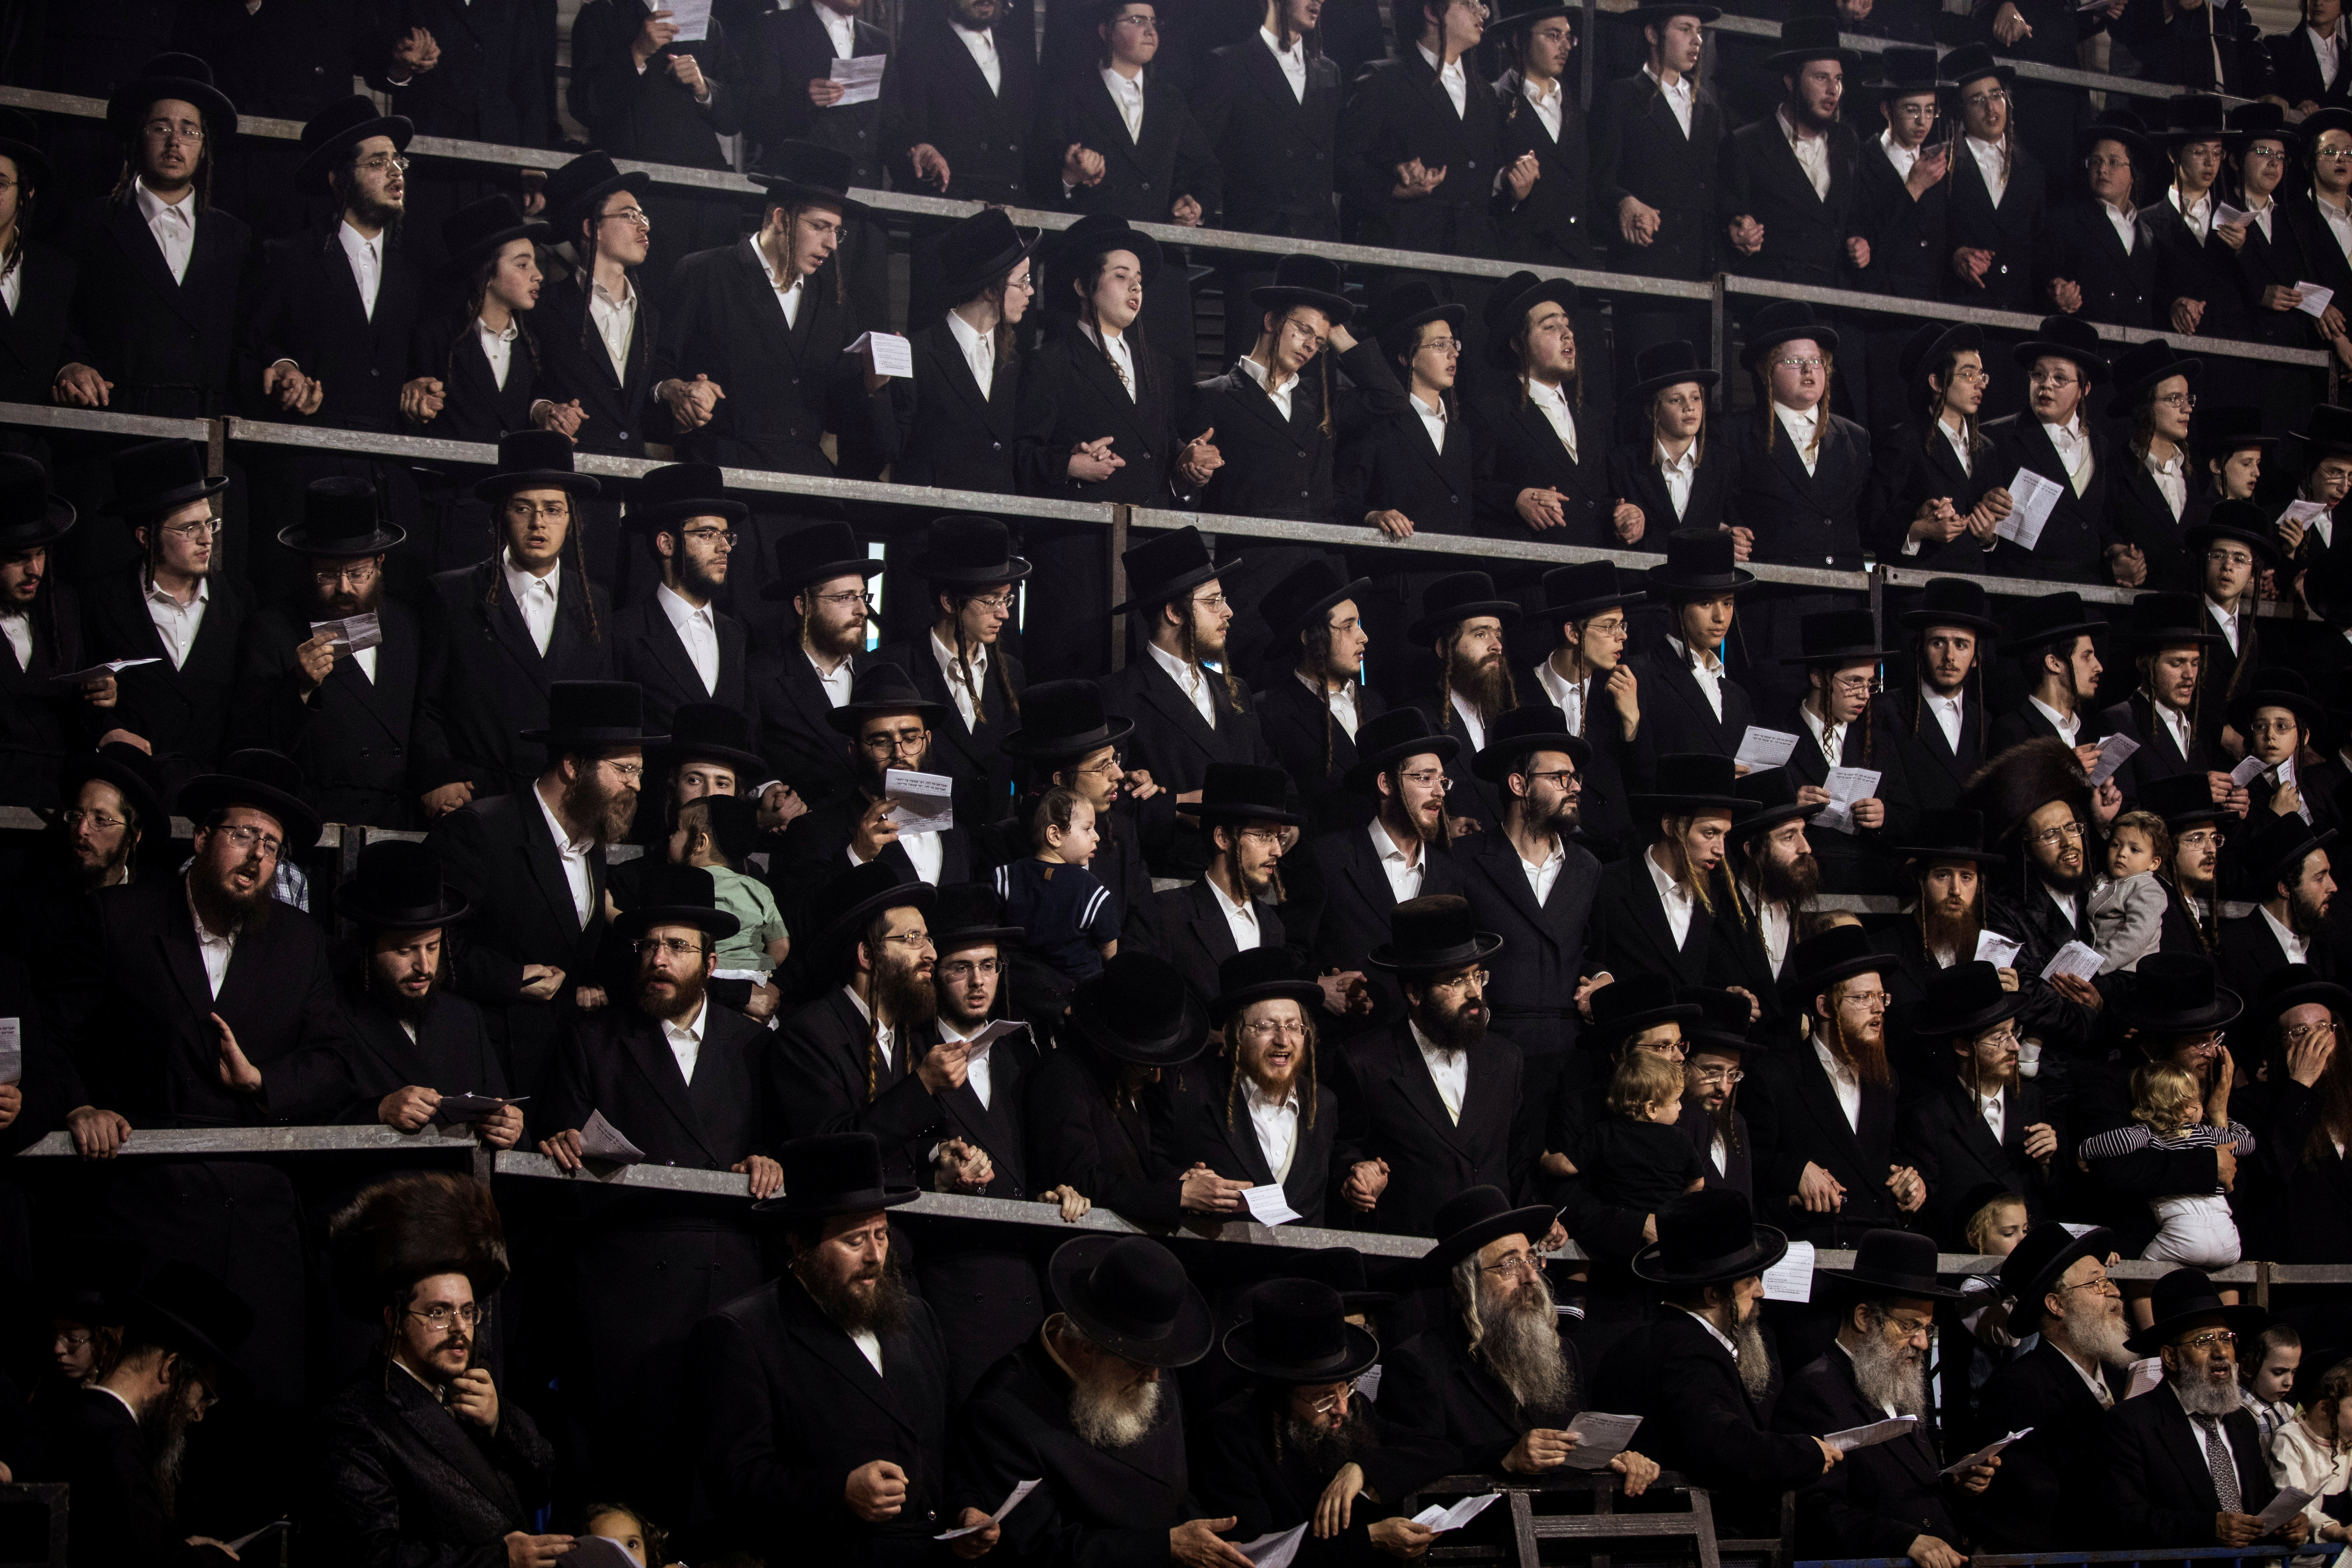 Ultra-Orthodox Jews sing and dance as they stand on tribunes at the Lag B'Omer event in Bnei Brak, near Tel Aviv, Israel April 29, 2021. REUTERS/Nir Elias/File Photo